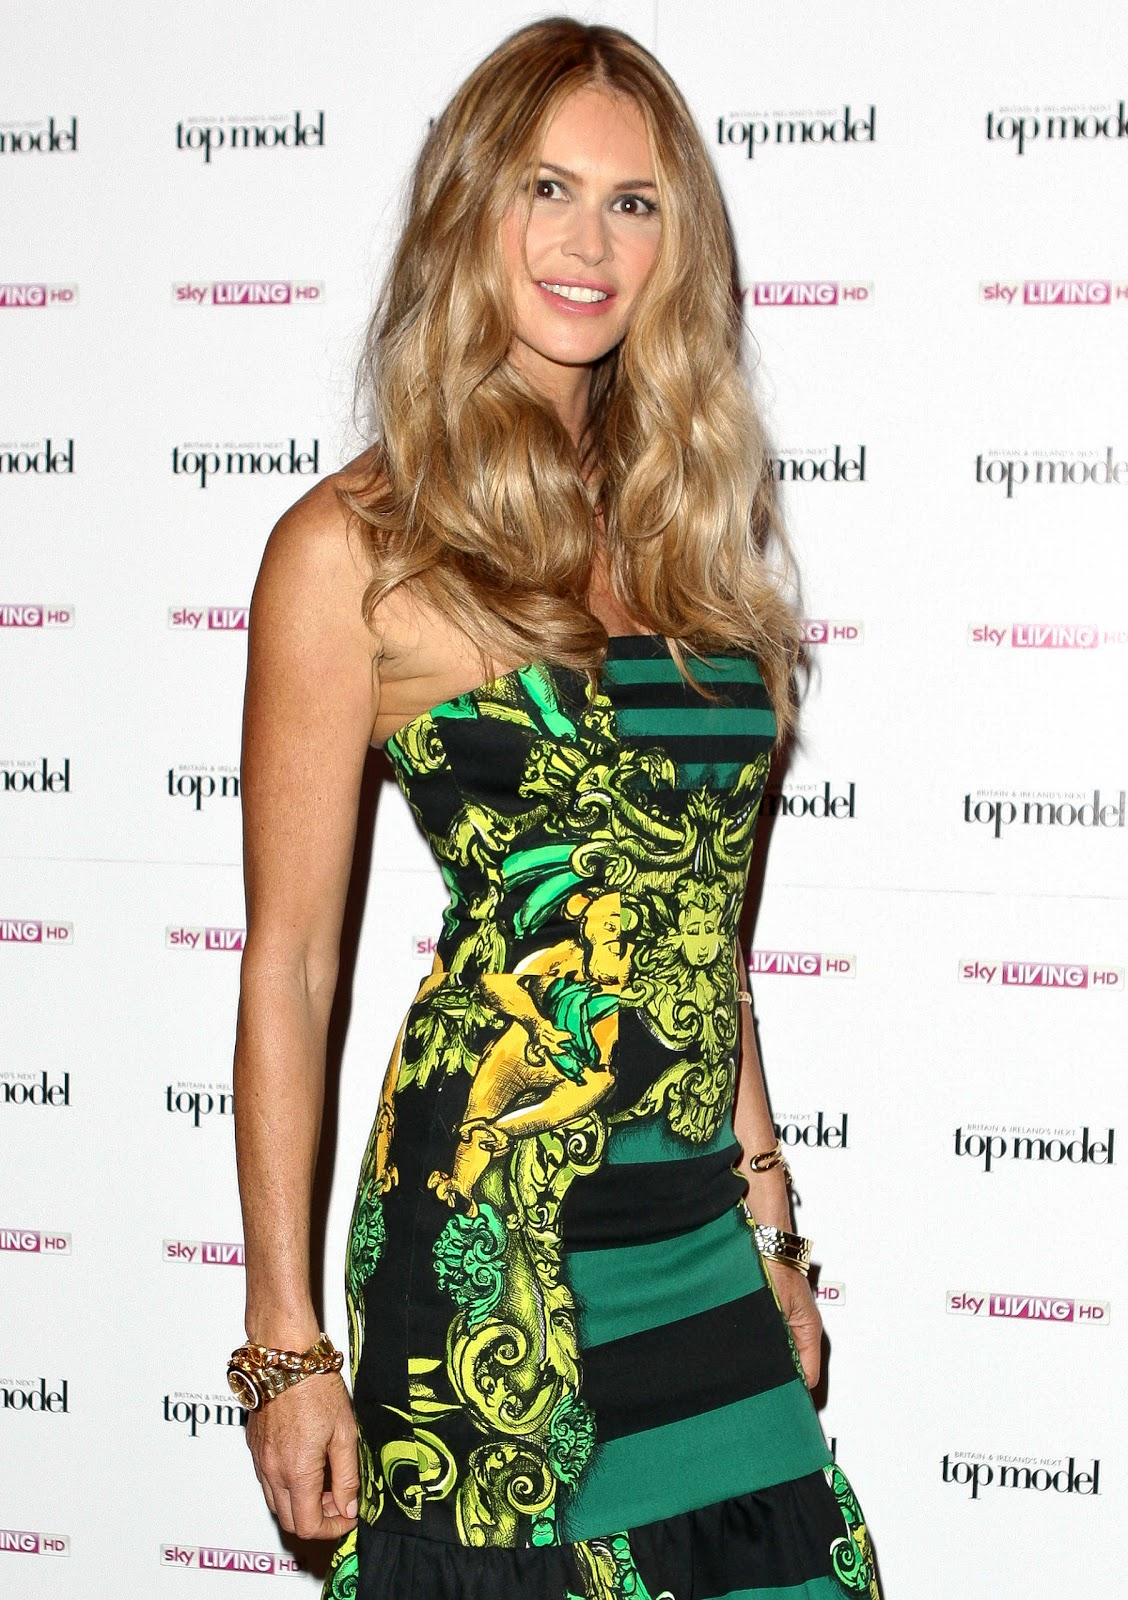 http://2.bp.blogspot.com/-WsWoBXTp2rE/ThET521BFTI/AAAAAAAADFk/nBX6i4quVFI/s1600/Elle+Macpherson+At+The+Launch+Of+Britain+Next+Top+Model+2011.jpg